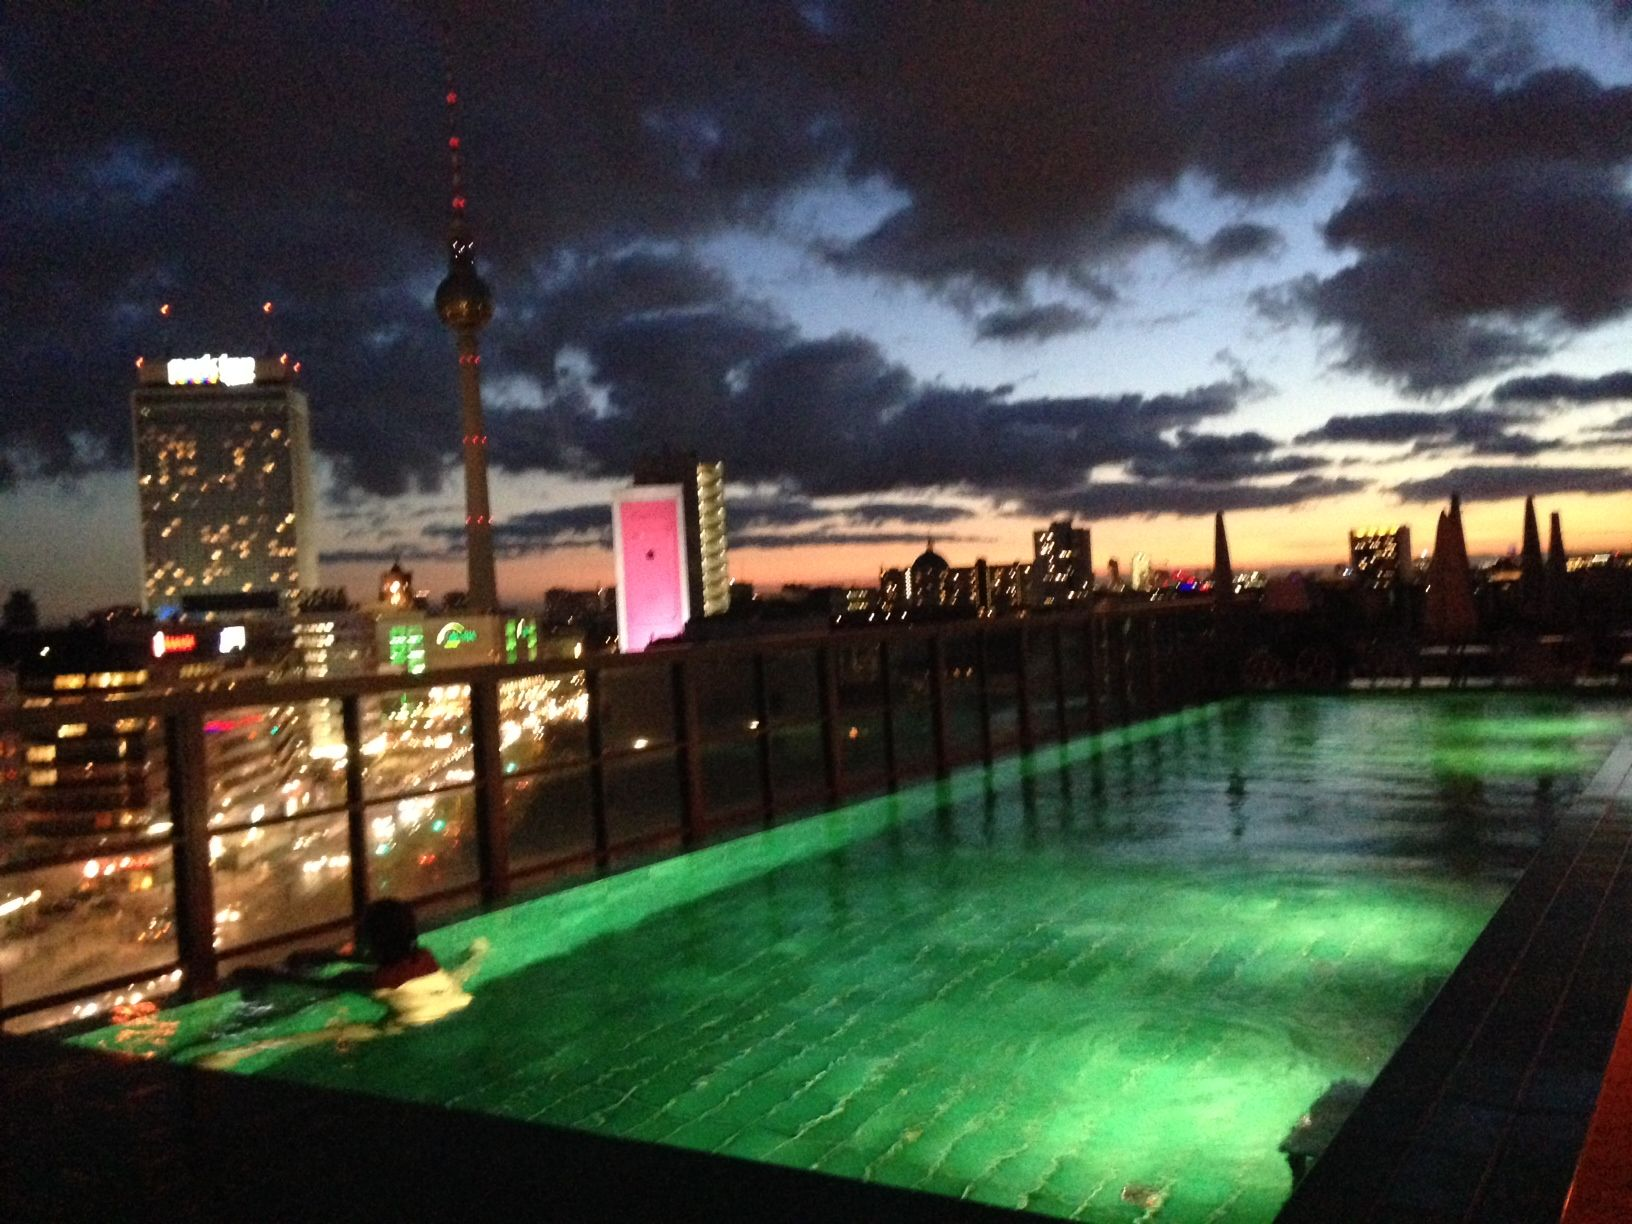 Soho house berlin rooftop heated pool at night